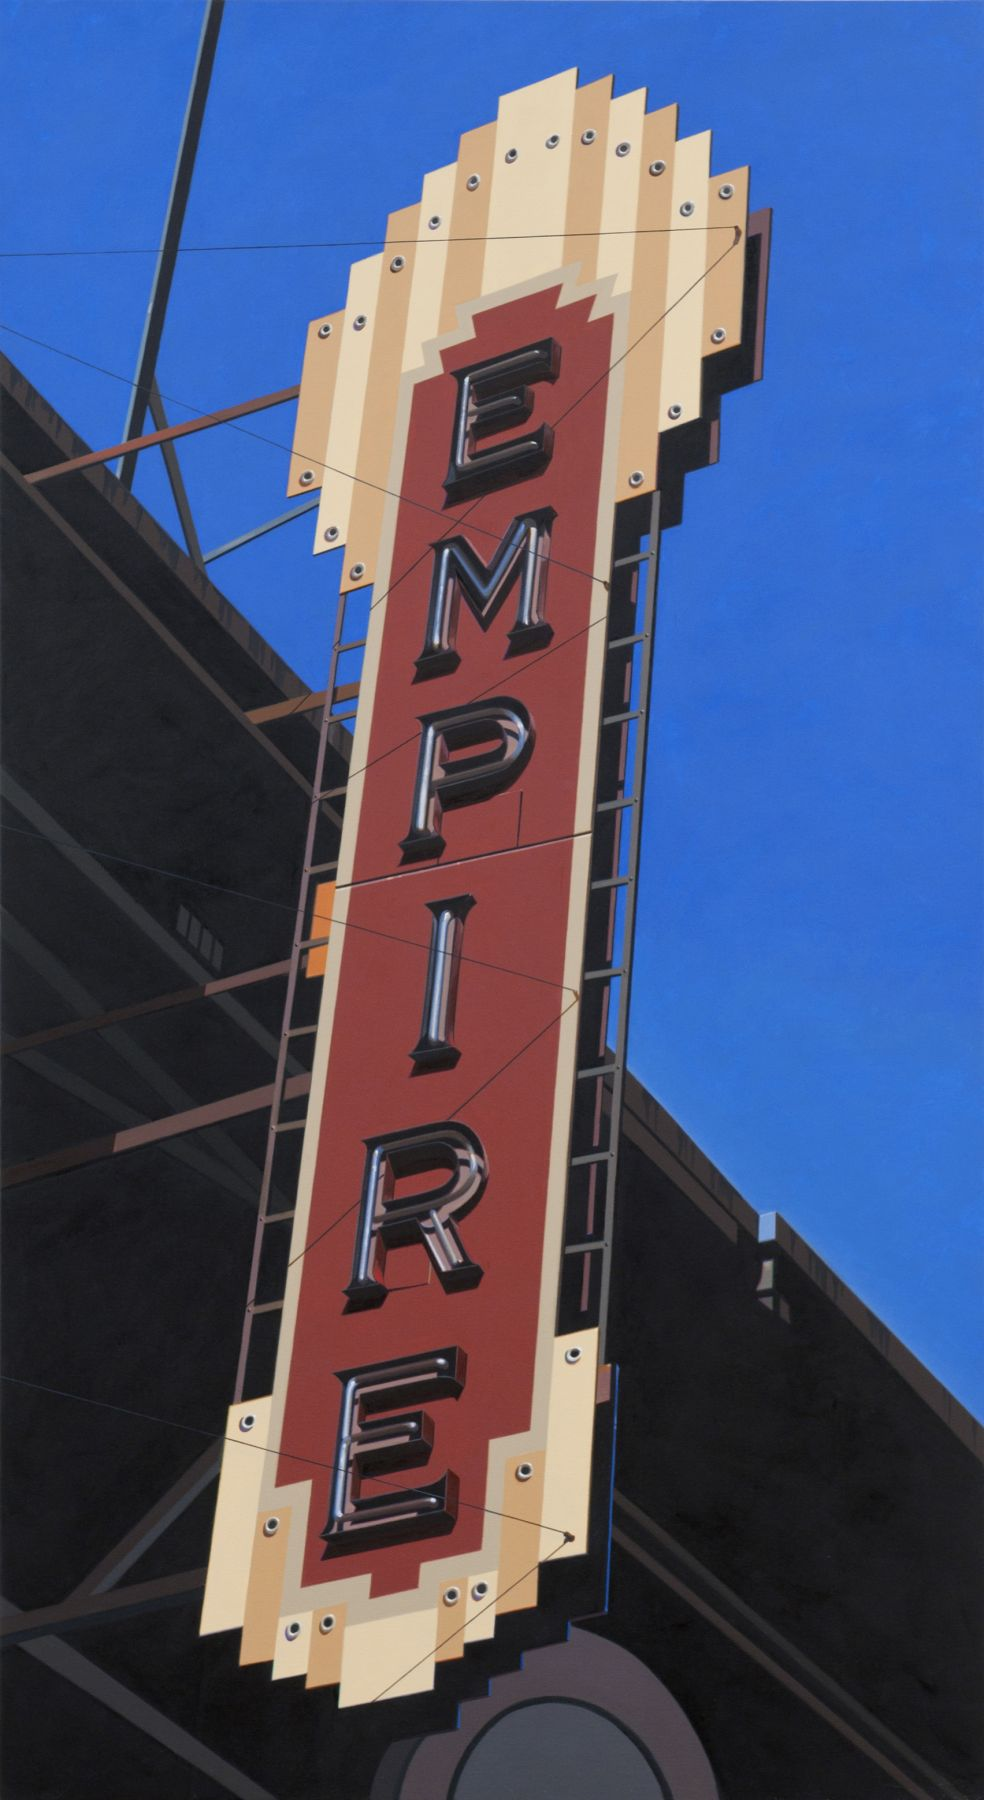 robert cottingham, Empire II (SOLD), 2010, oil on canvas, 82 1/2 x 45 inches